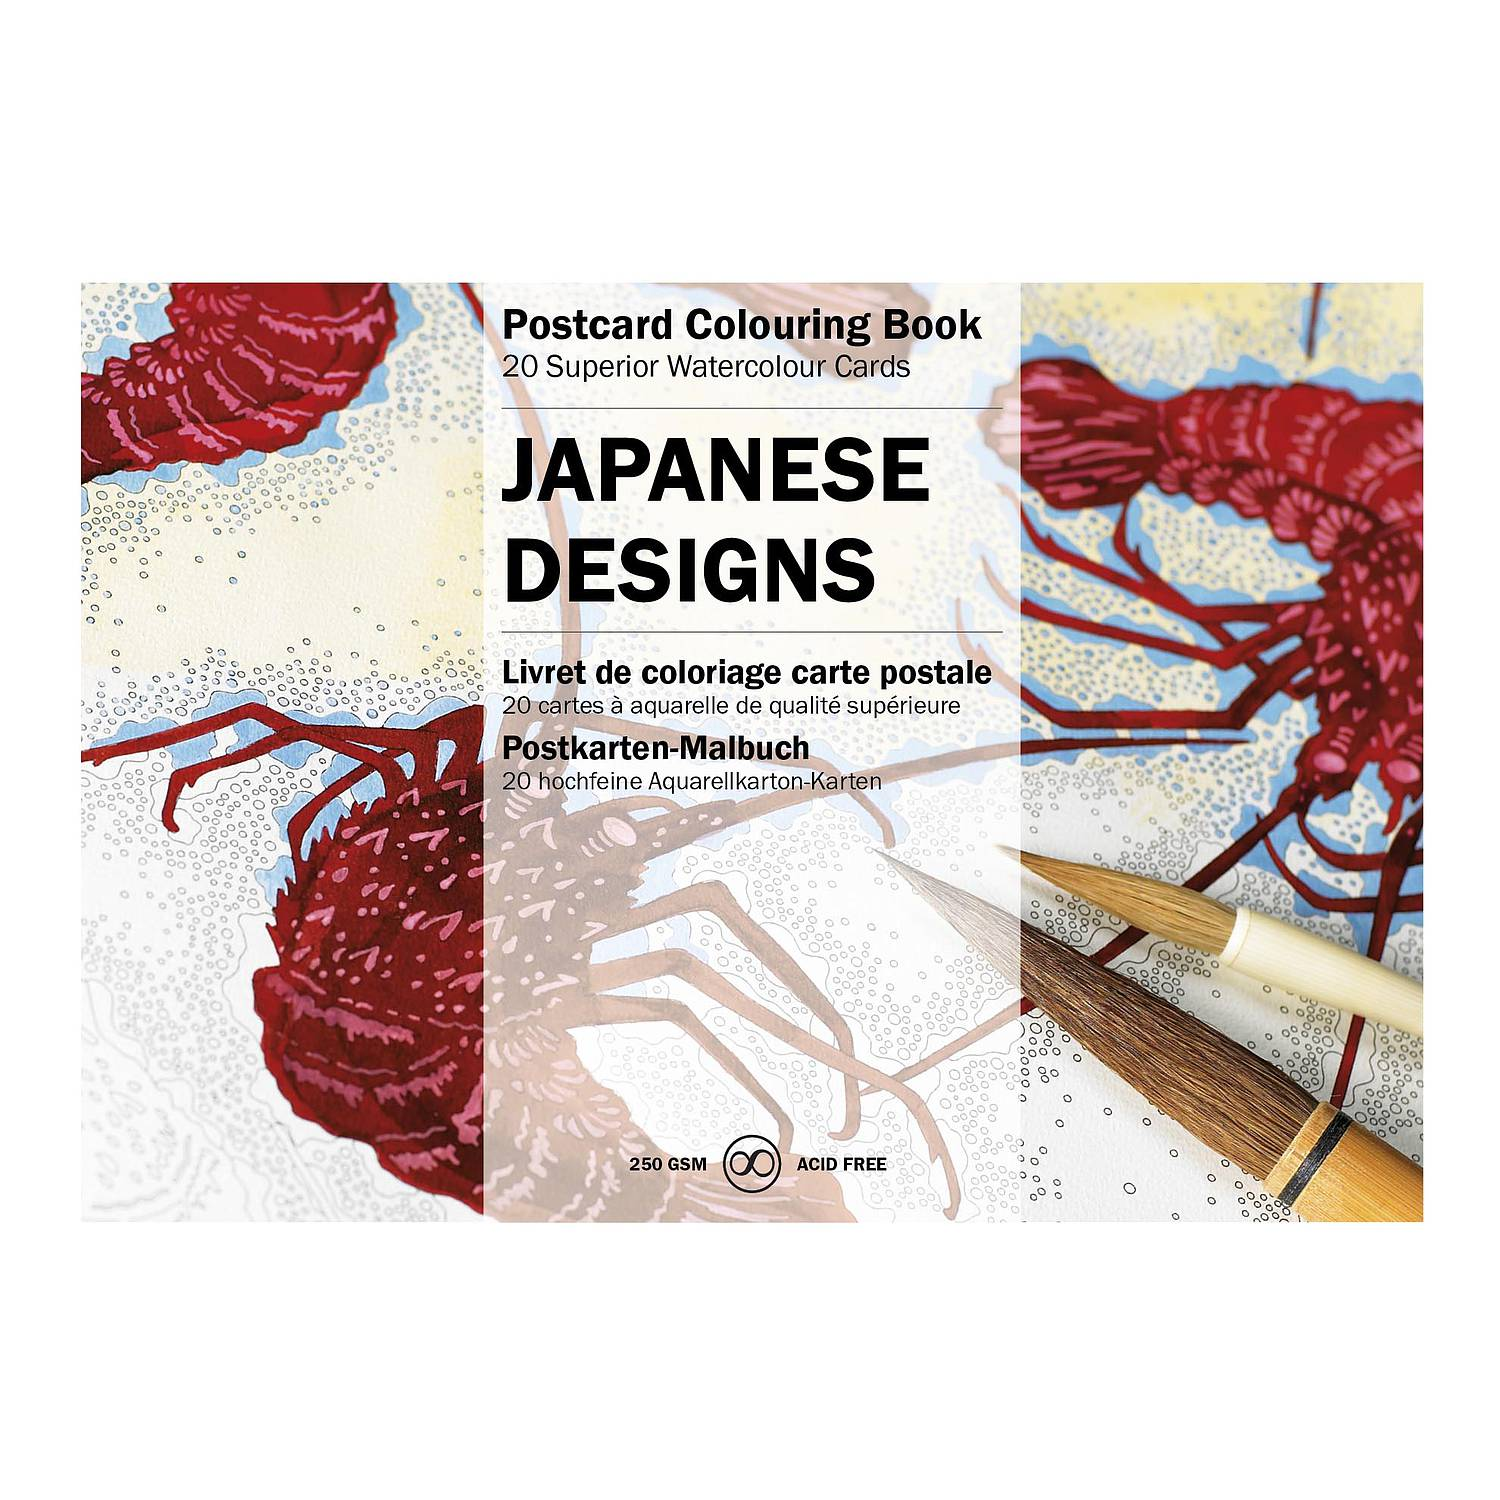 Postcard Colouring Book - Japanese Designs